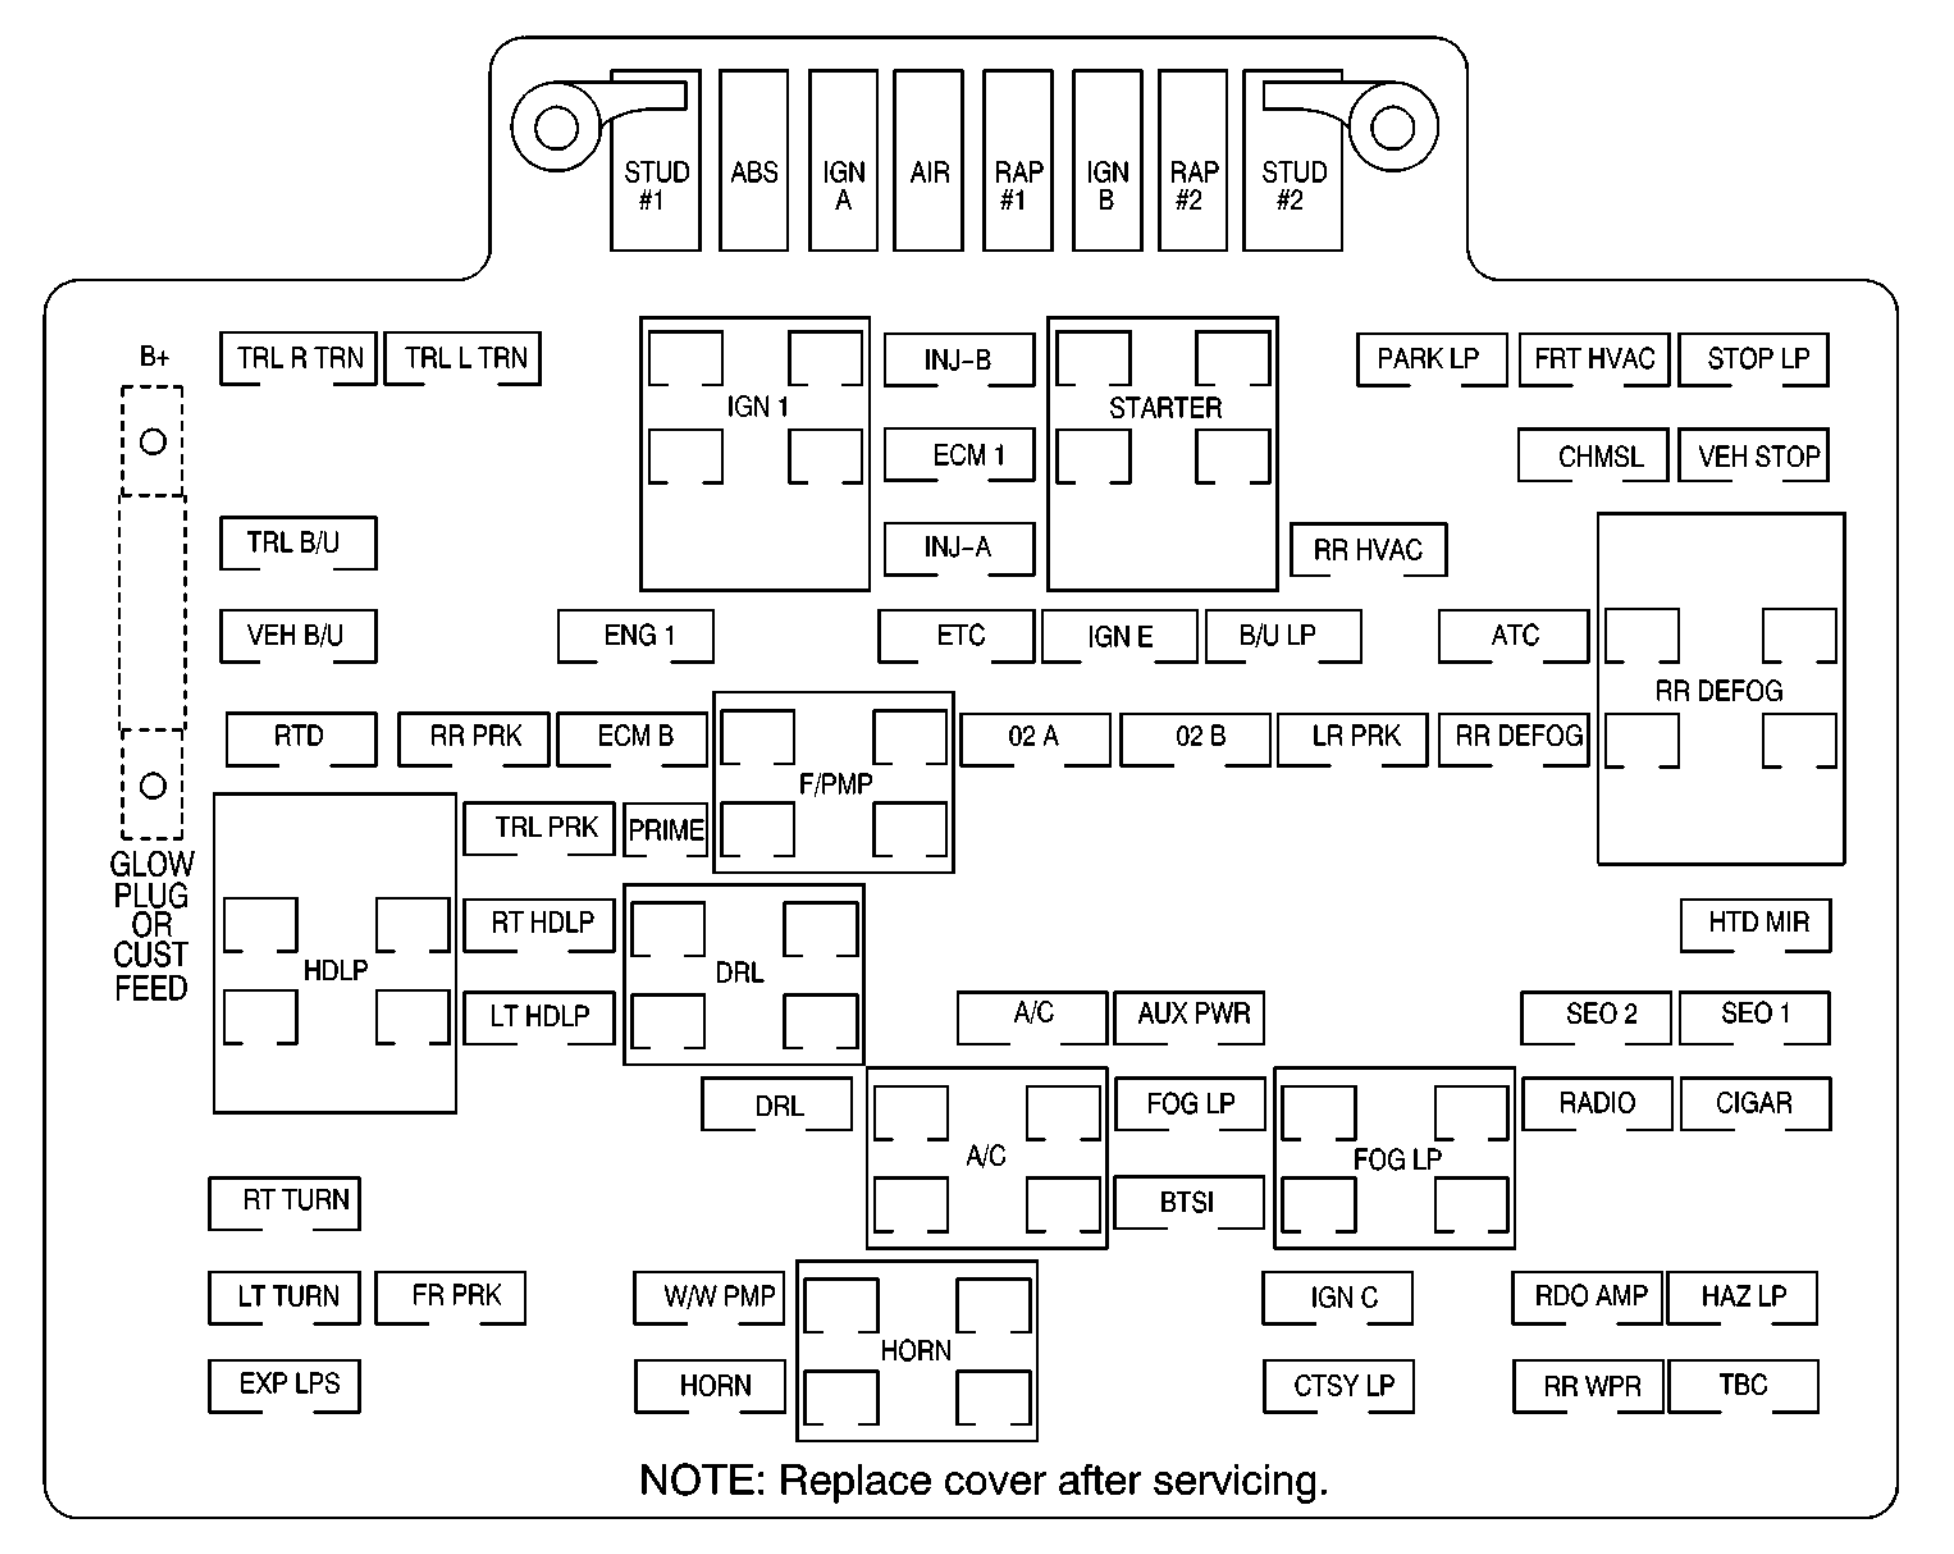 Chevrolet Suburban 2002 fuse box diagram Auto Genius